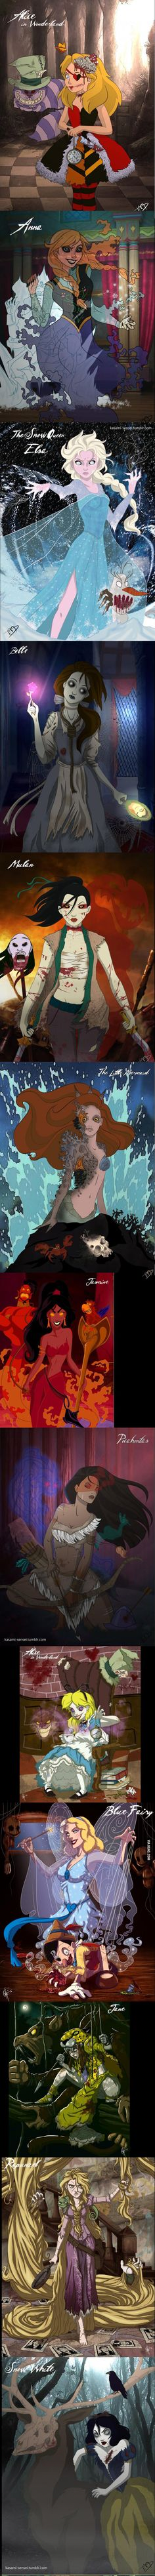 Scary Disney Princesses